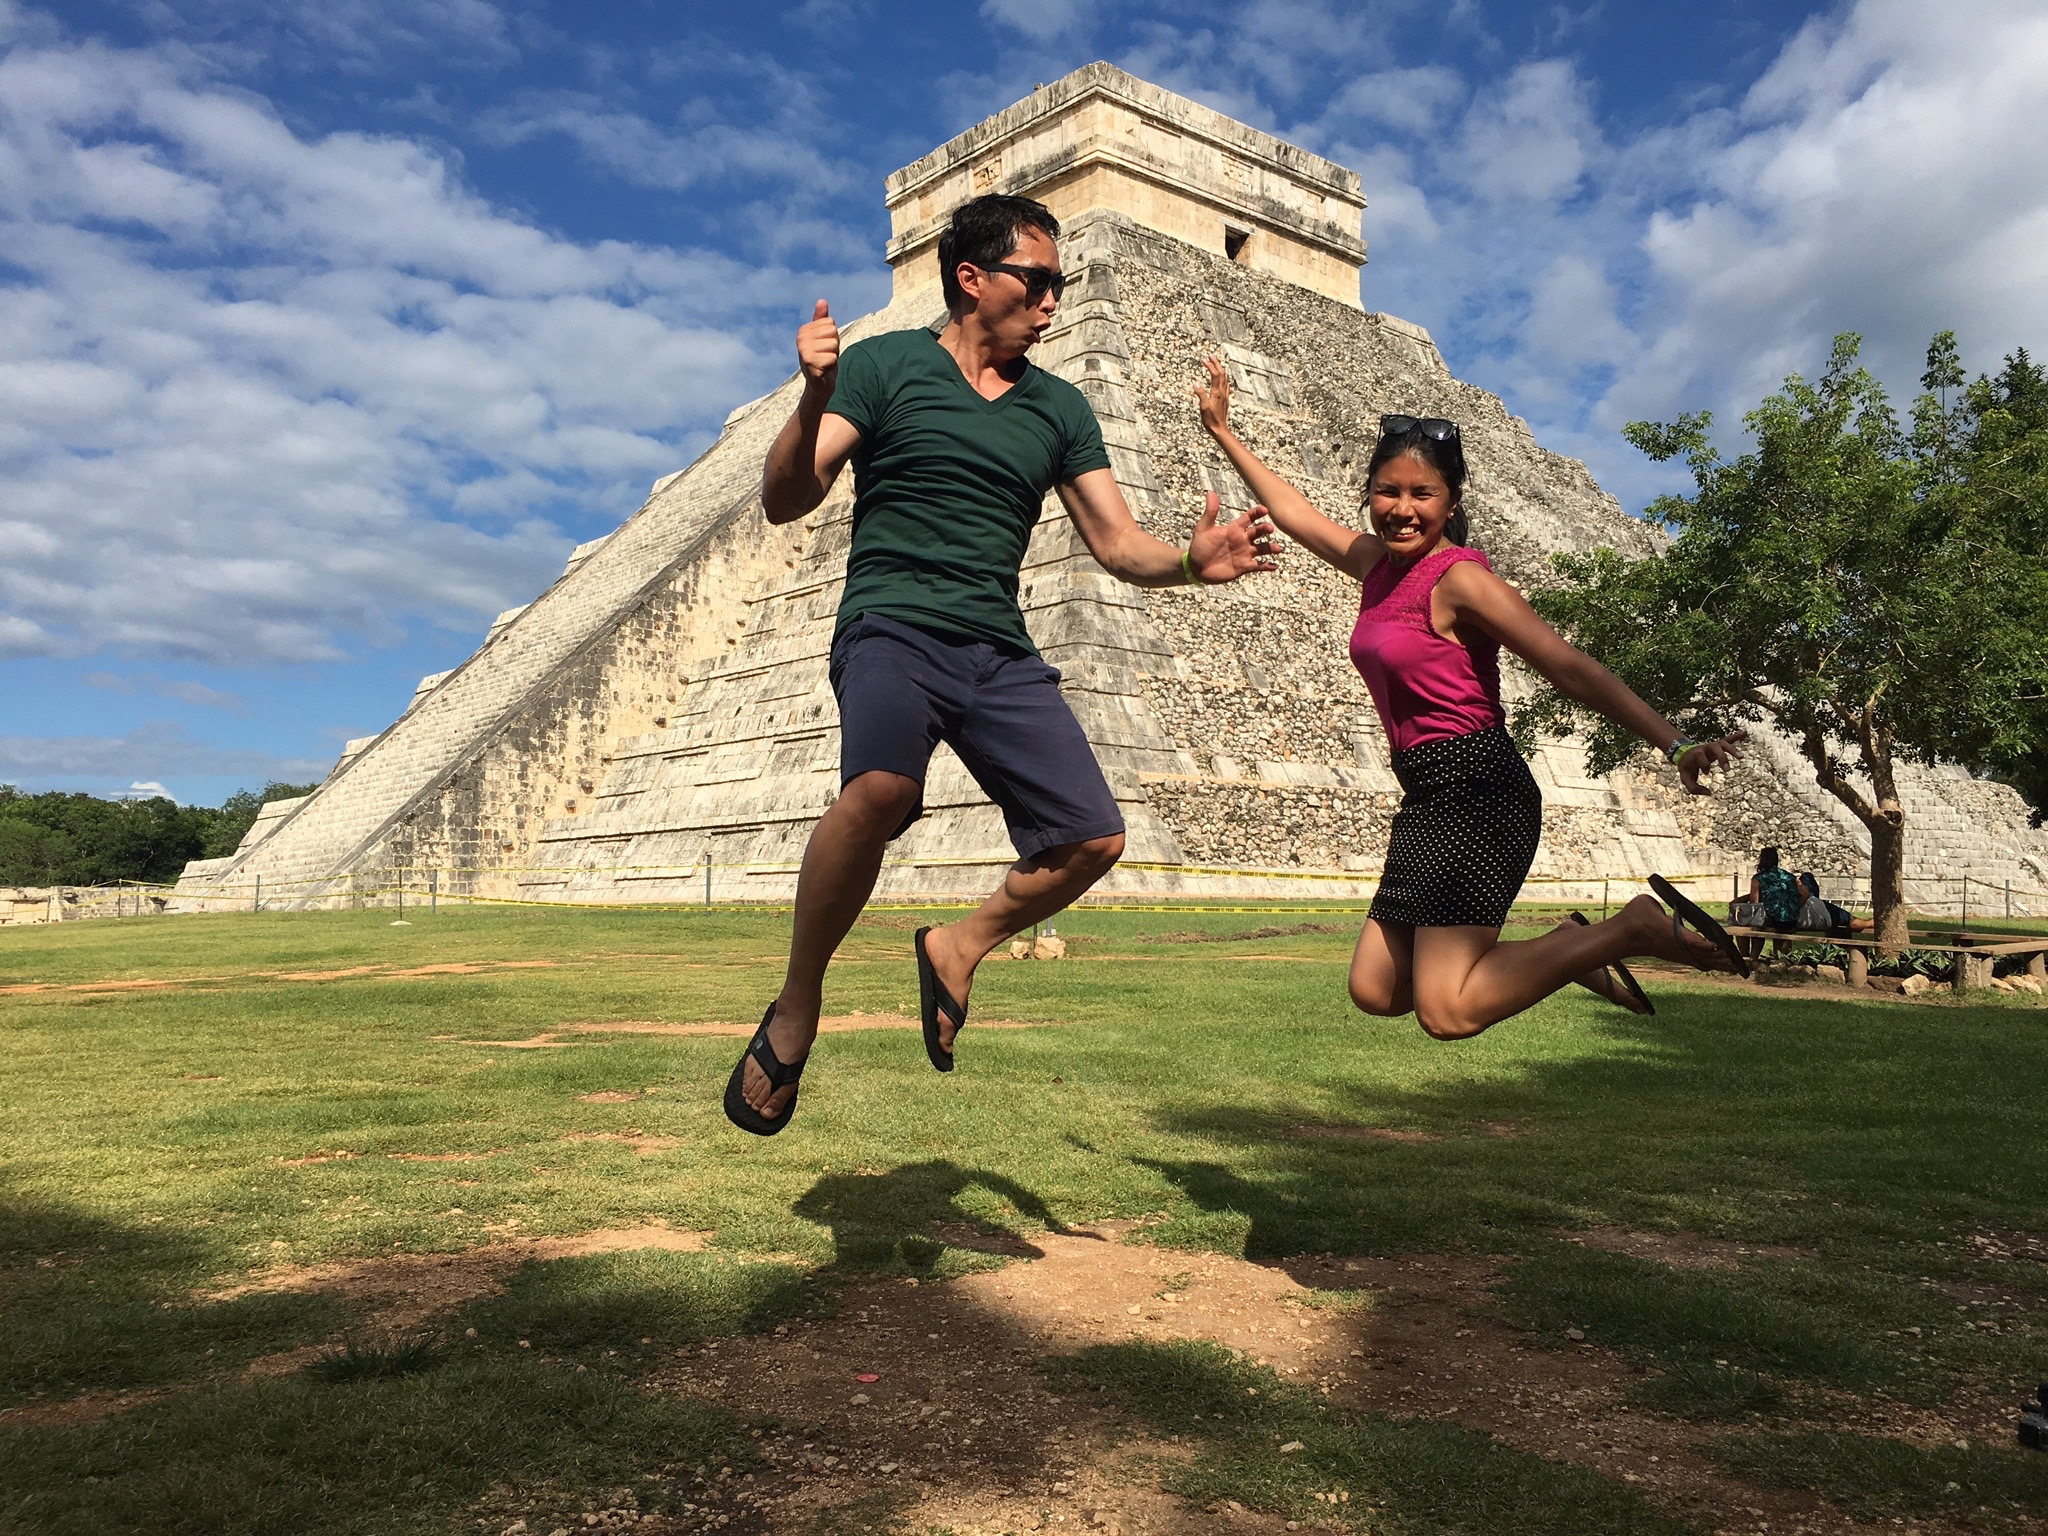 Chichen Itza is located on Mexico's Yucatán Peninsula. This UNESCO World Heritage Site features impressive architecture from the ancient Mayan civilization.